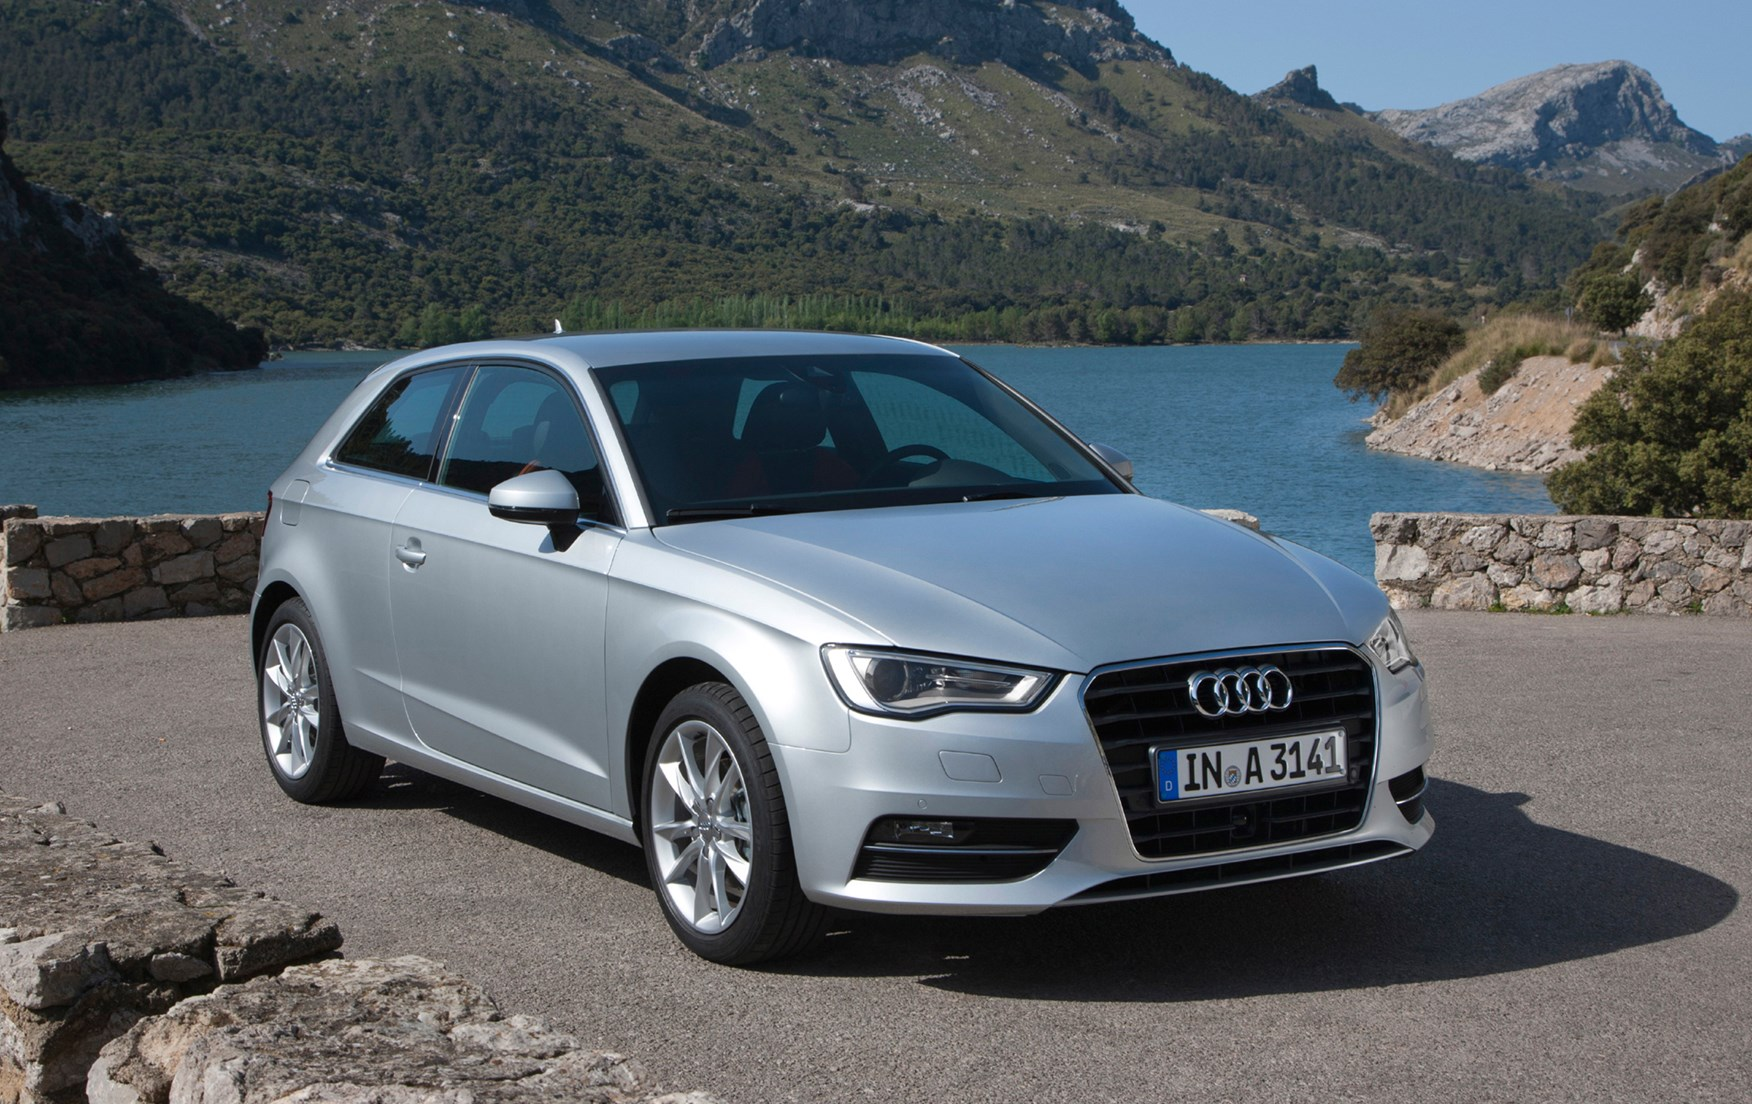 audi a3 hatchback 2012 features equipment and accessories parkers. Black Bedroom Furniture Sets. Home Design Ideas